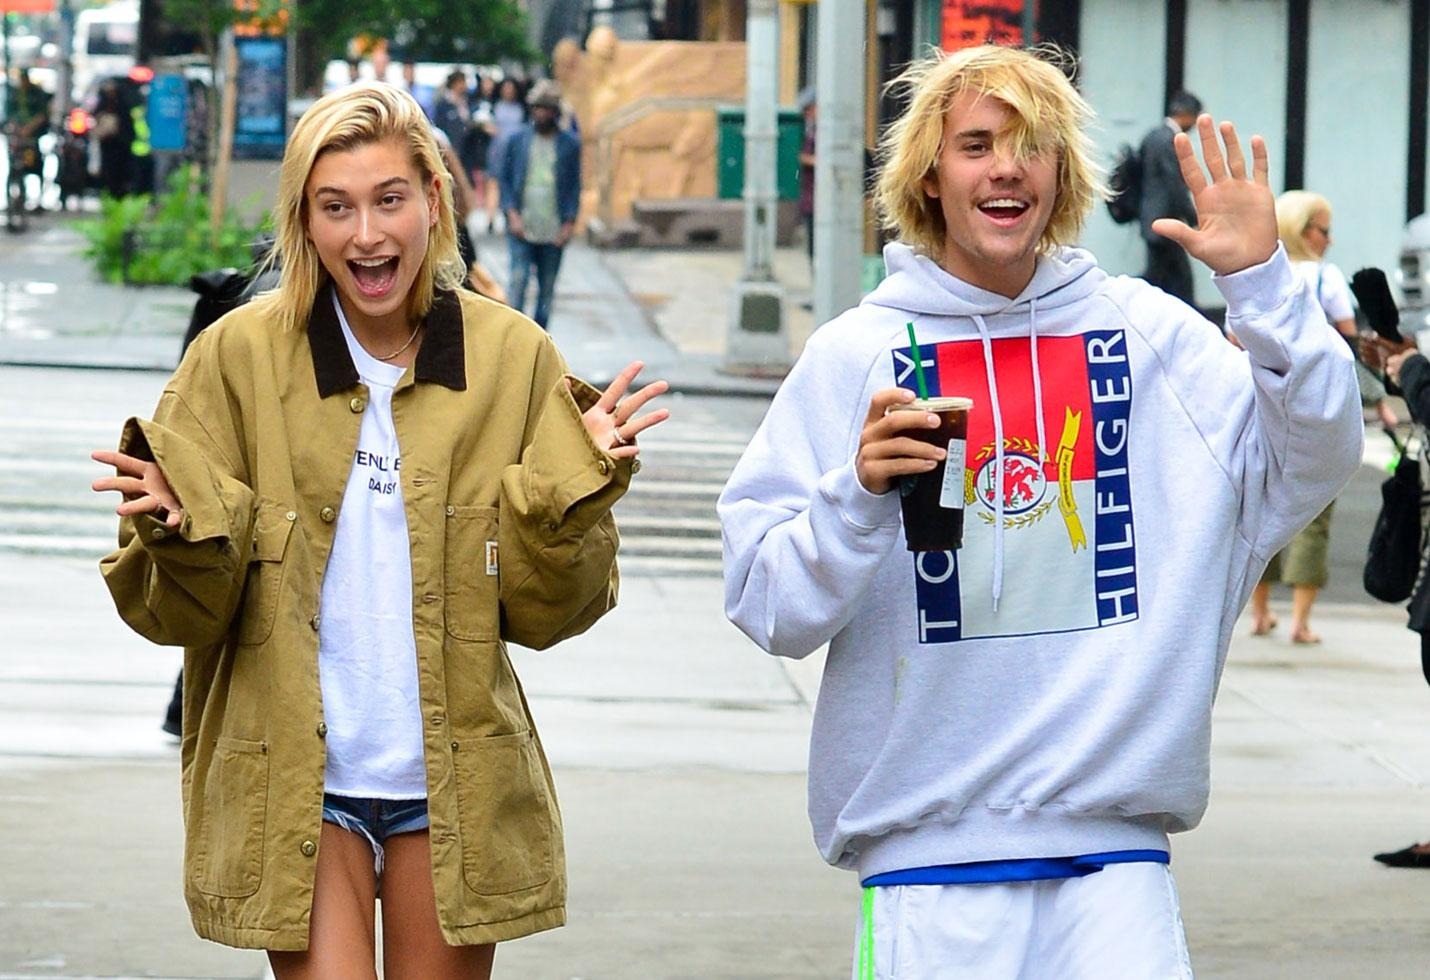 Hailey Baldwin Isn't Worried About Shade From Selena Gomez But Is Nervous That Songs Will Trigger Justin Bieber